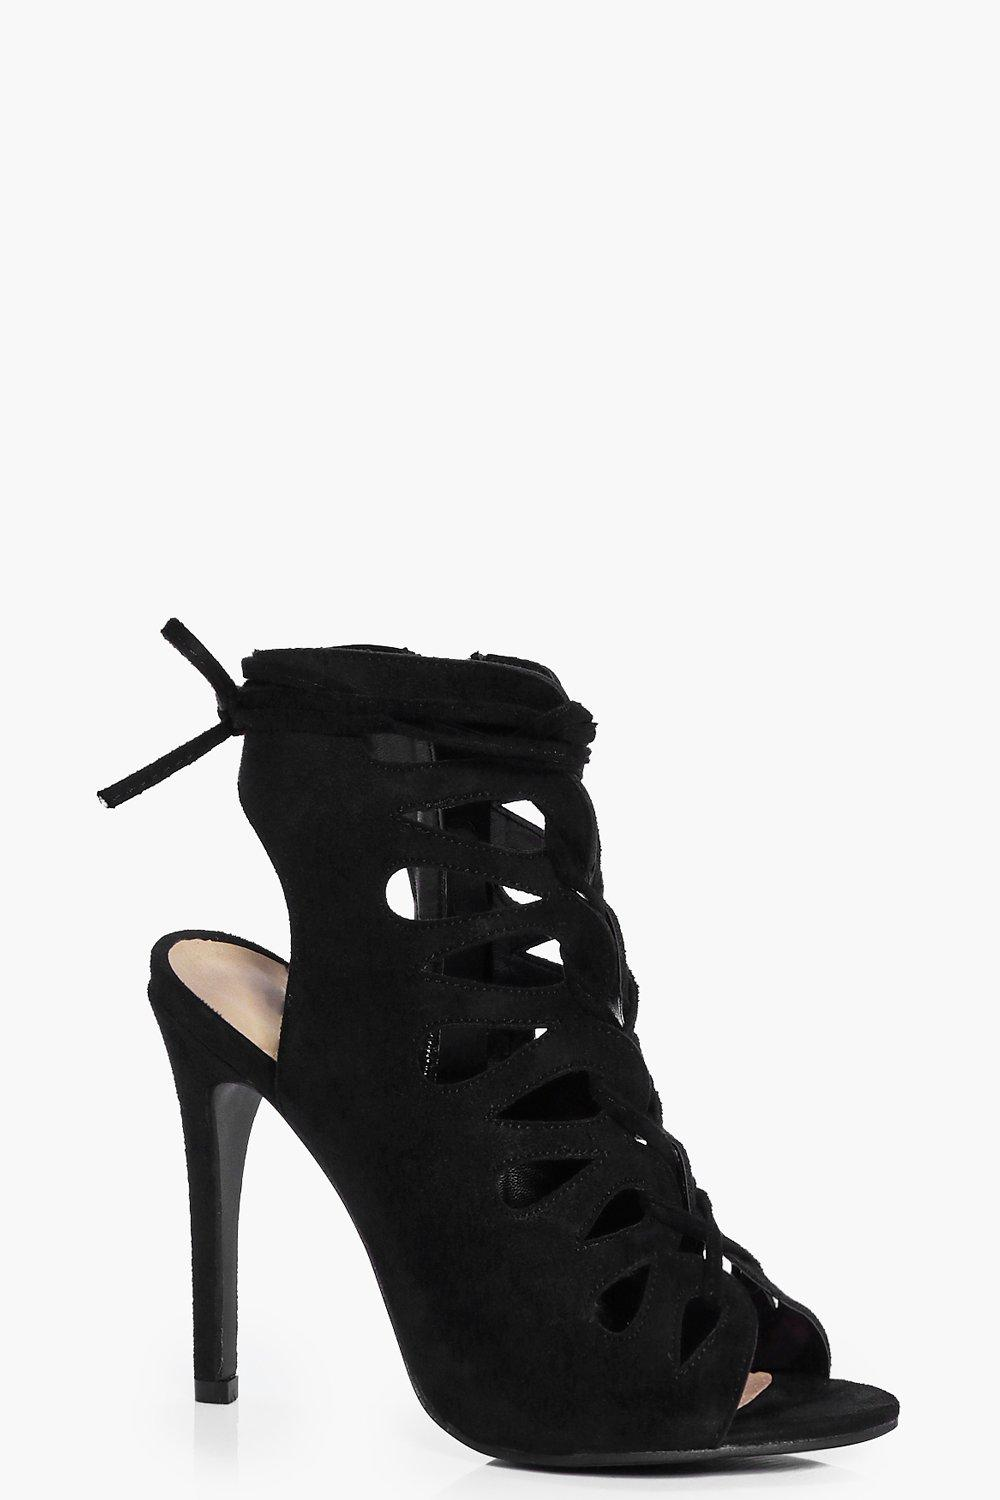 Harriet Peeptoe Lace Up Heels